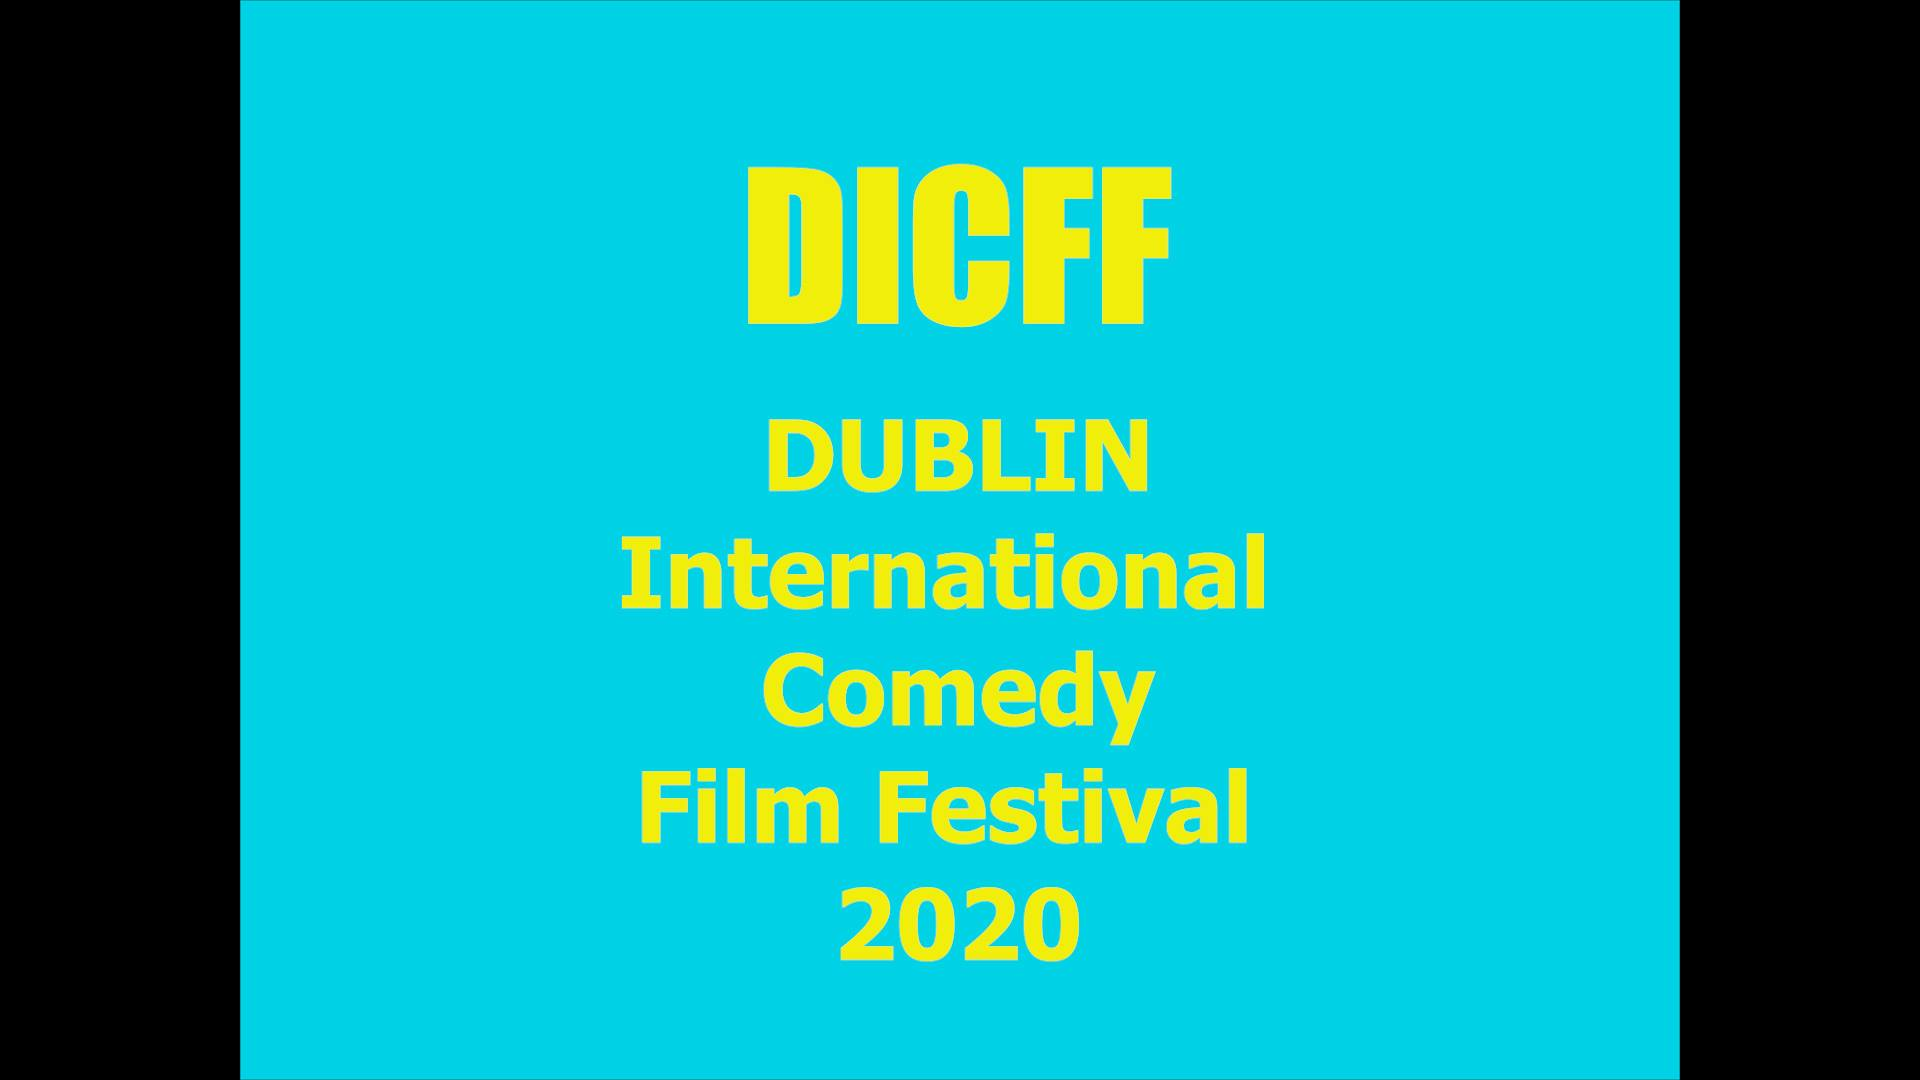 Submissions open for Dublin International Comedy Film Festival this December